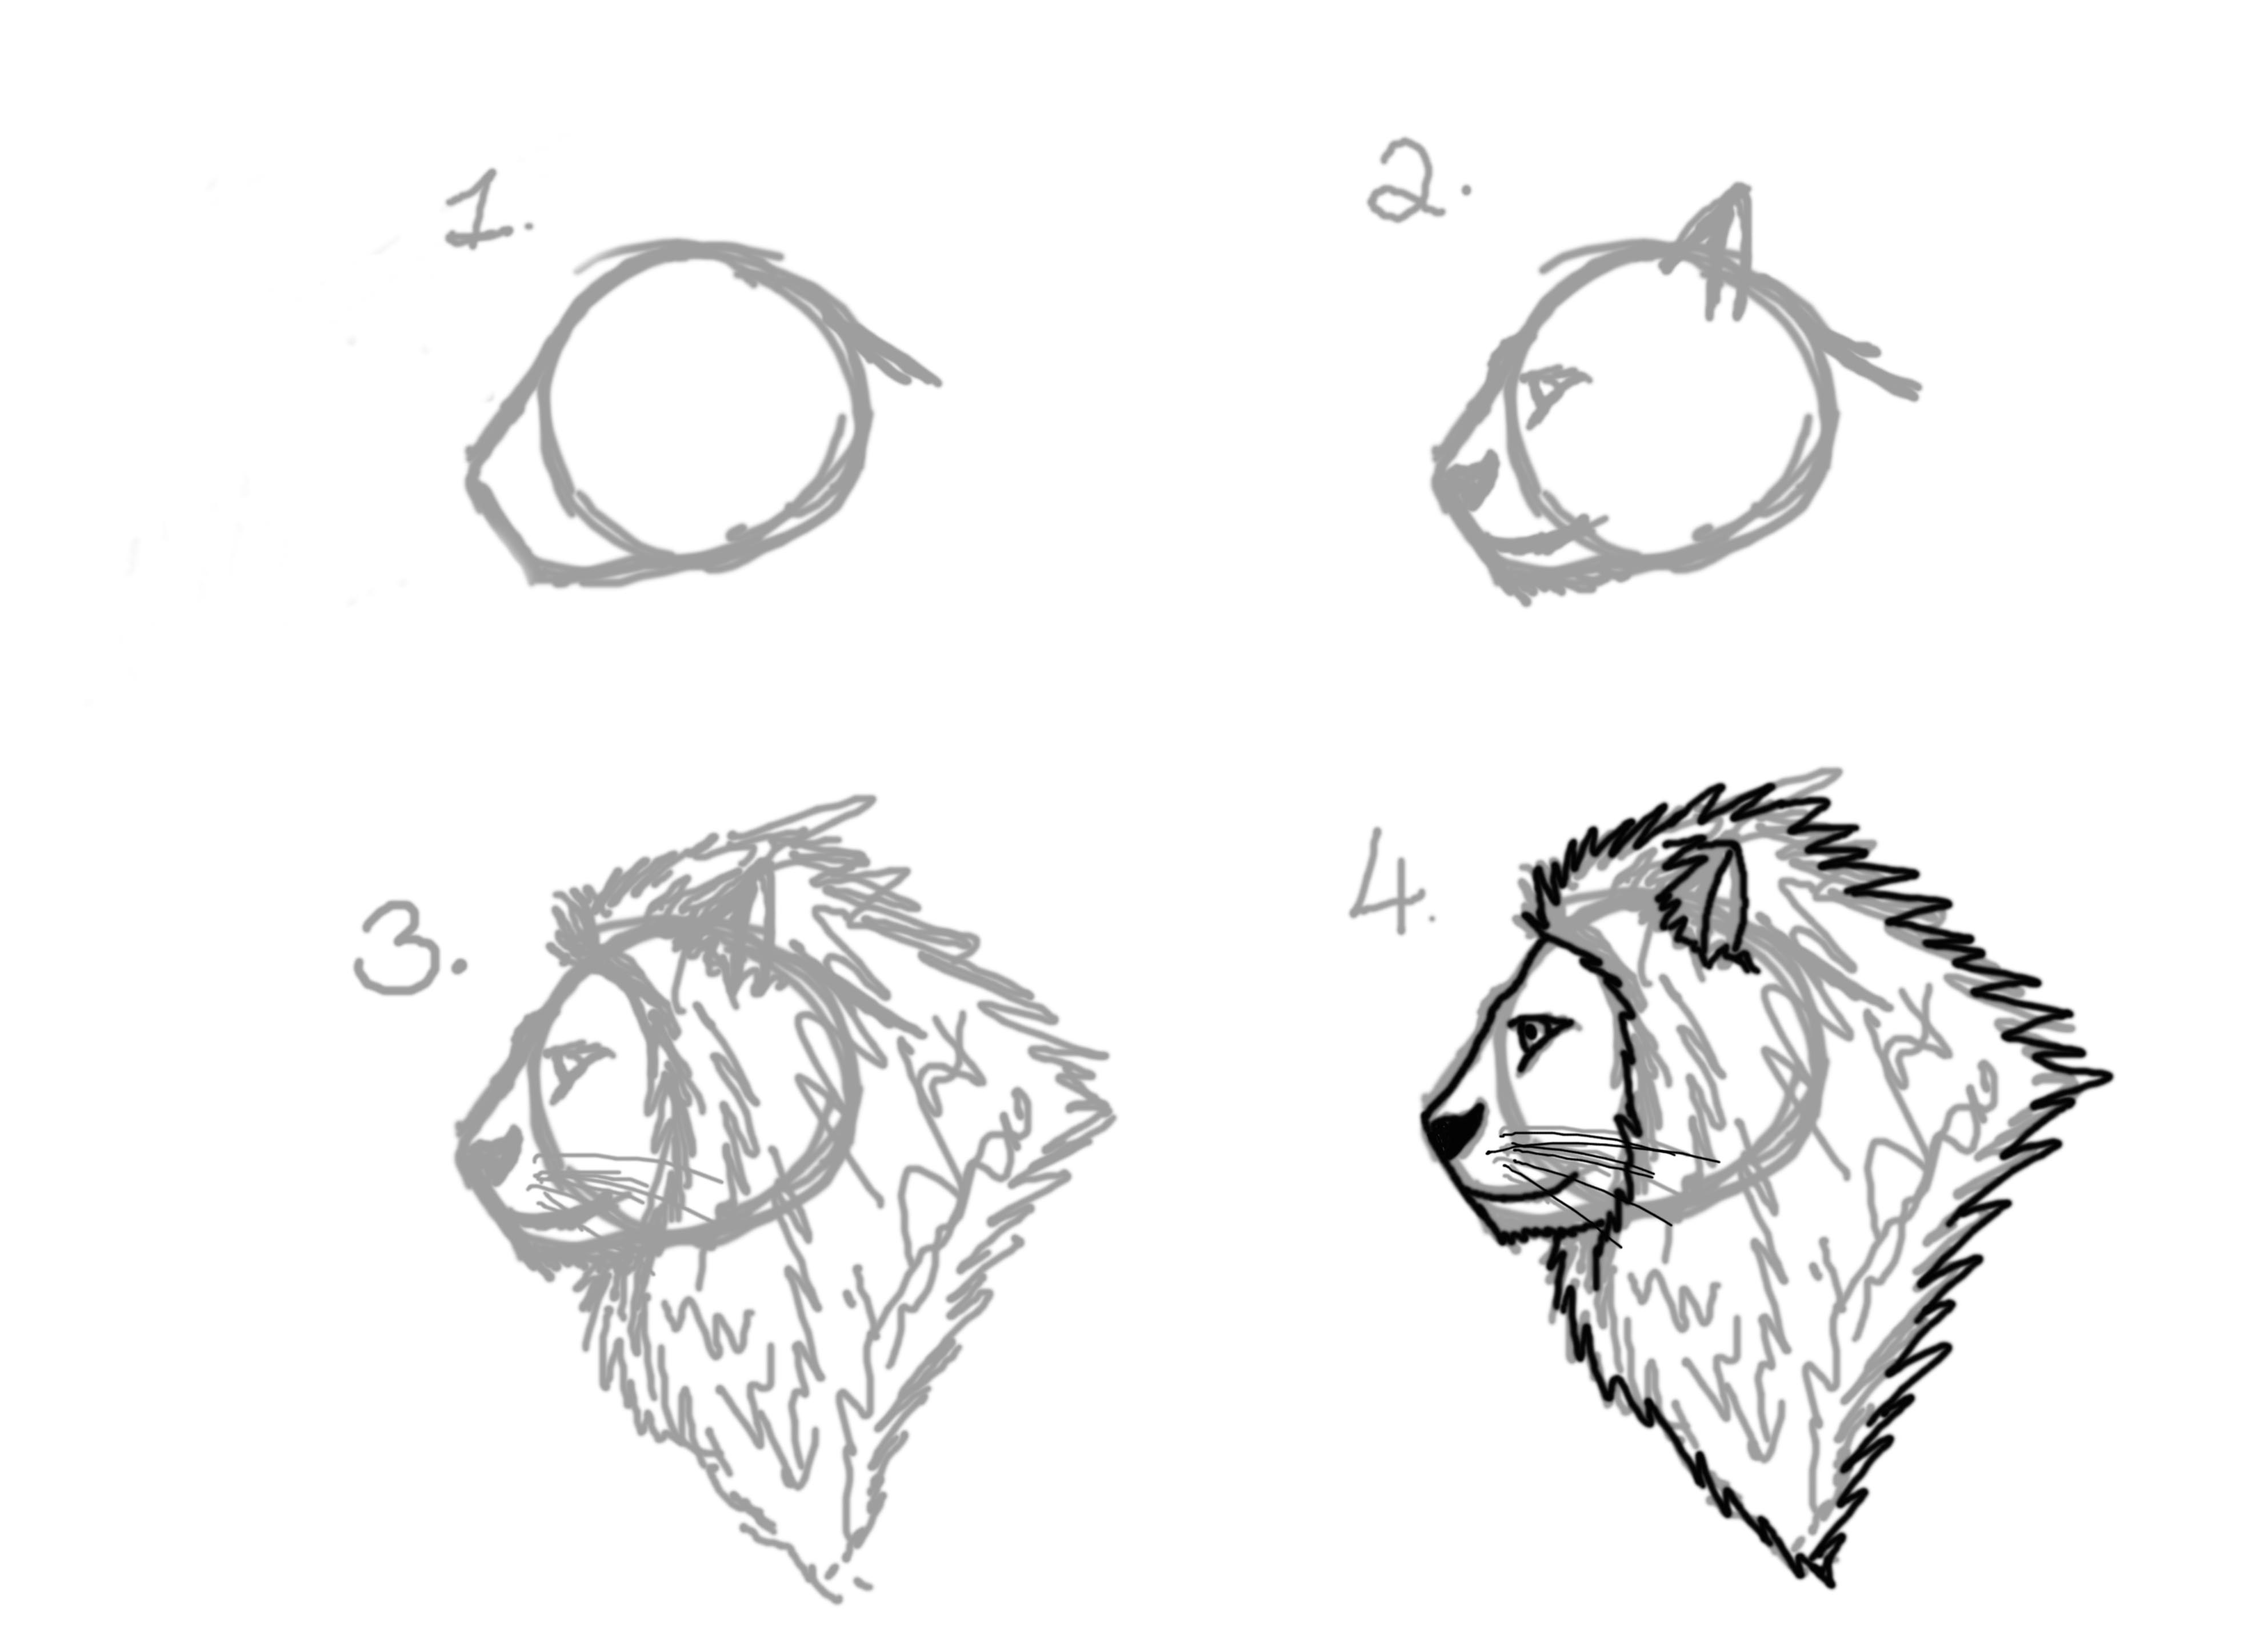 Uncategorized How To Draw A Lion Head Step By Step lion head tutorial by mysticwolveshowl on deviantart mysticwolveshowl